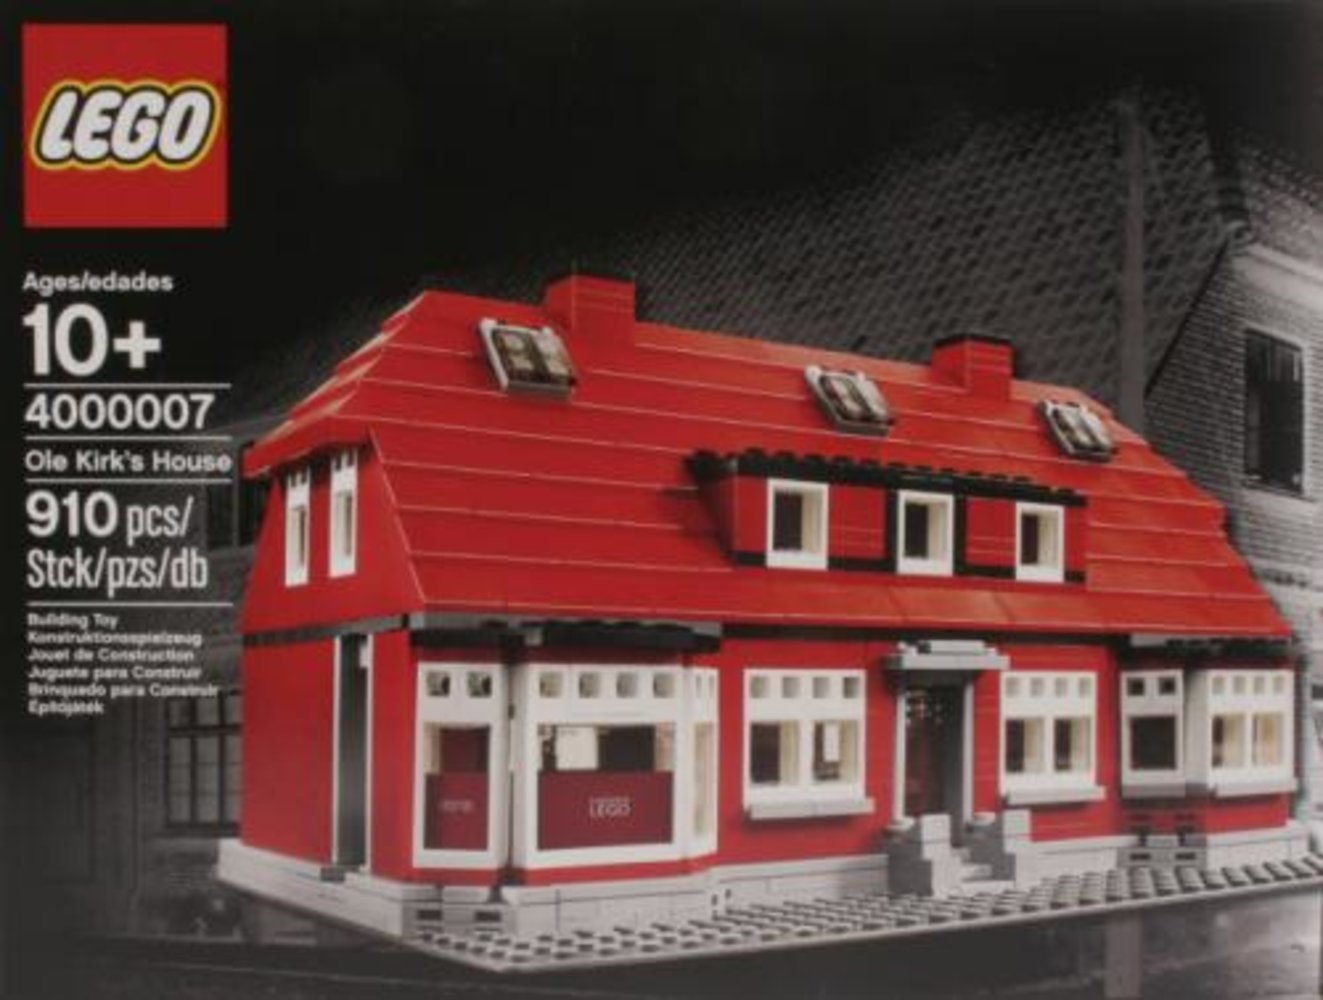 Ole Kirk's House (LEGO Employee Christmas Gift Version)